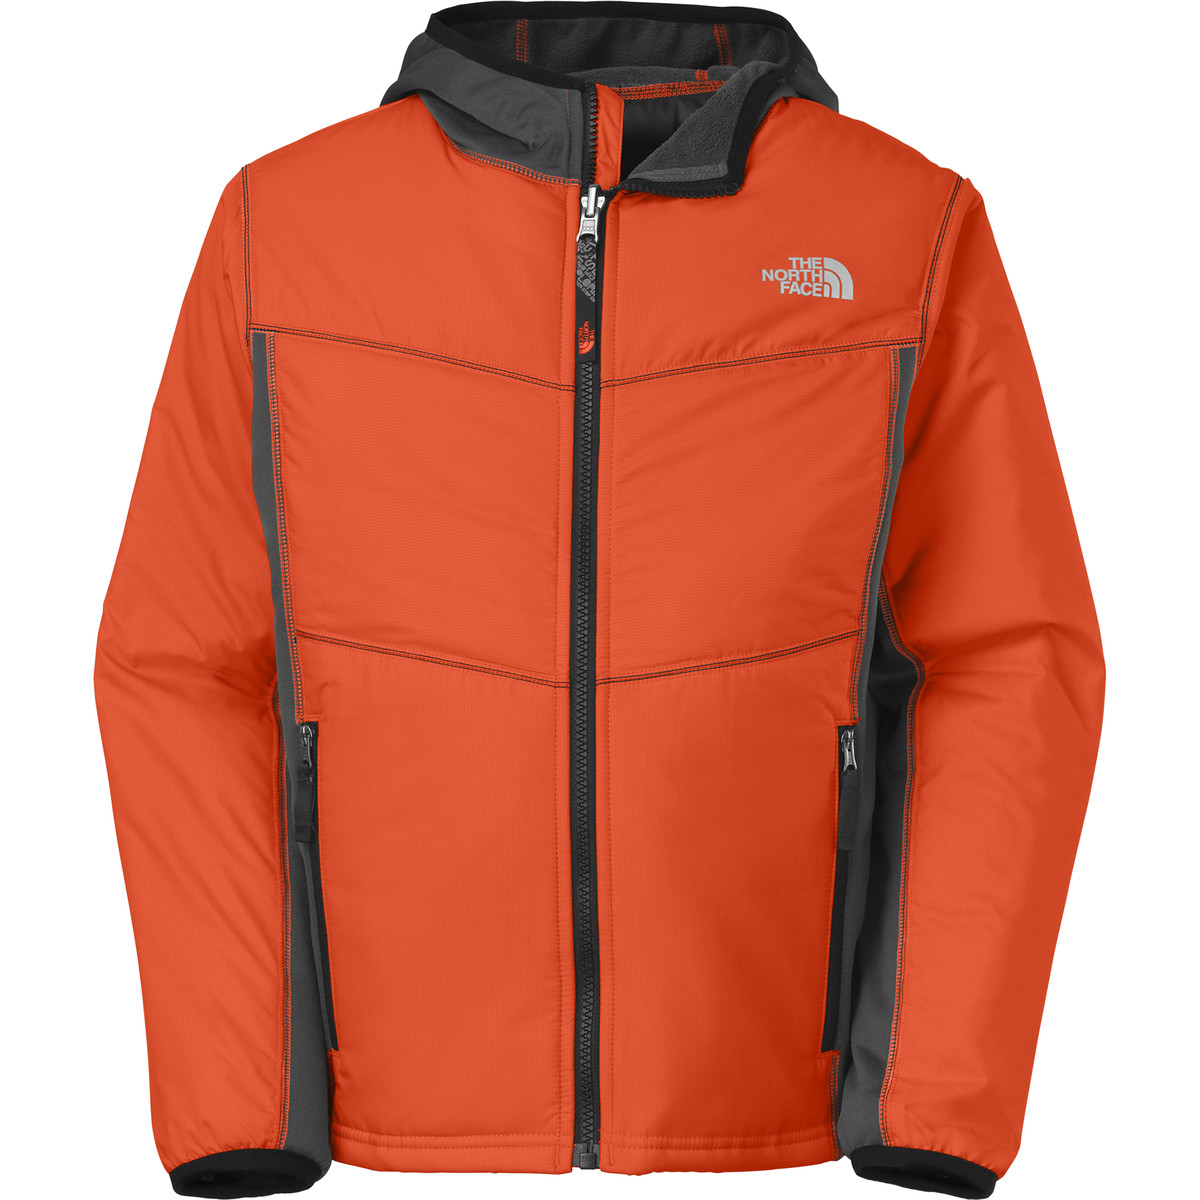 The North Face Petrel Hybrid Wind Jacket